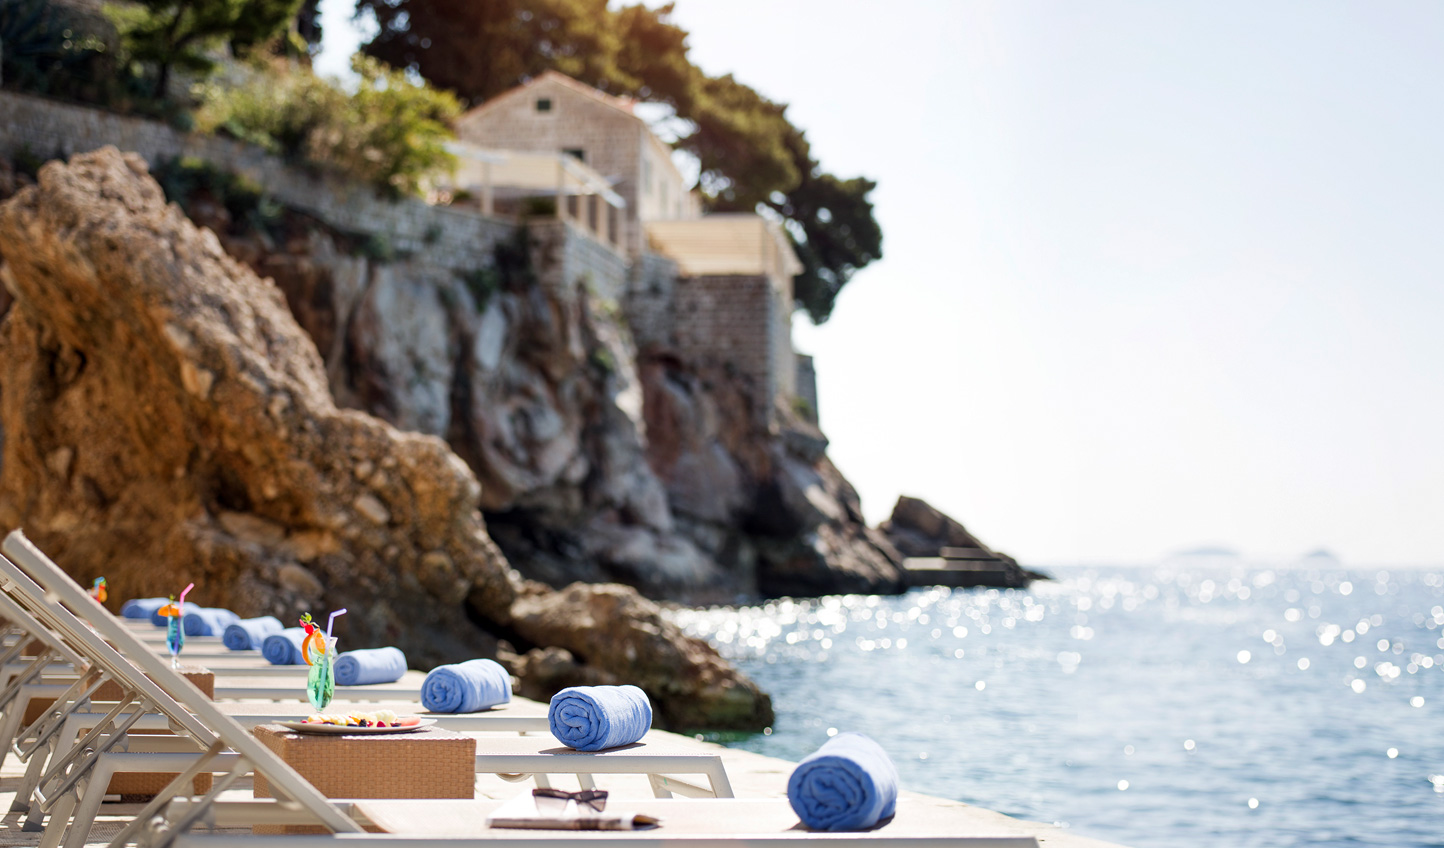 Dive into turquoise waters from the private beach at Hotel Excelsior